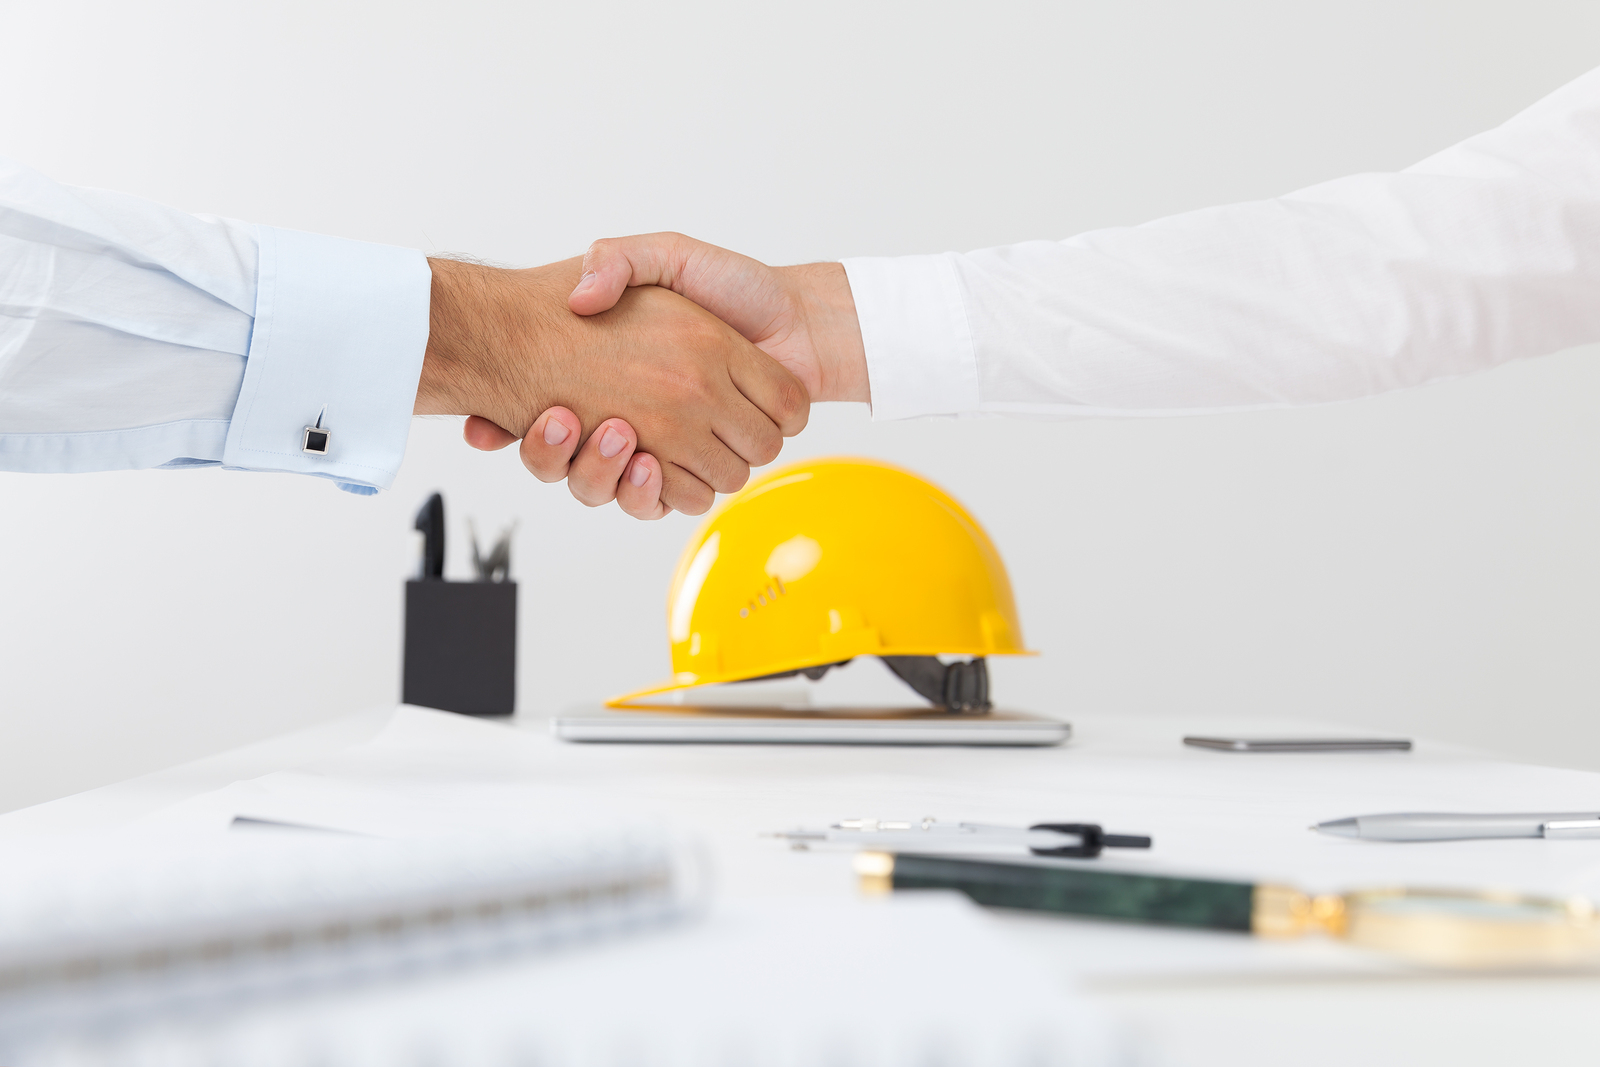 Close up of a handshake and a yellow builder helmet is in the background.